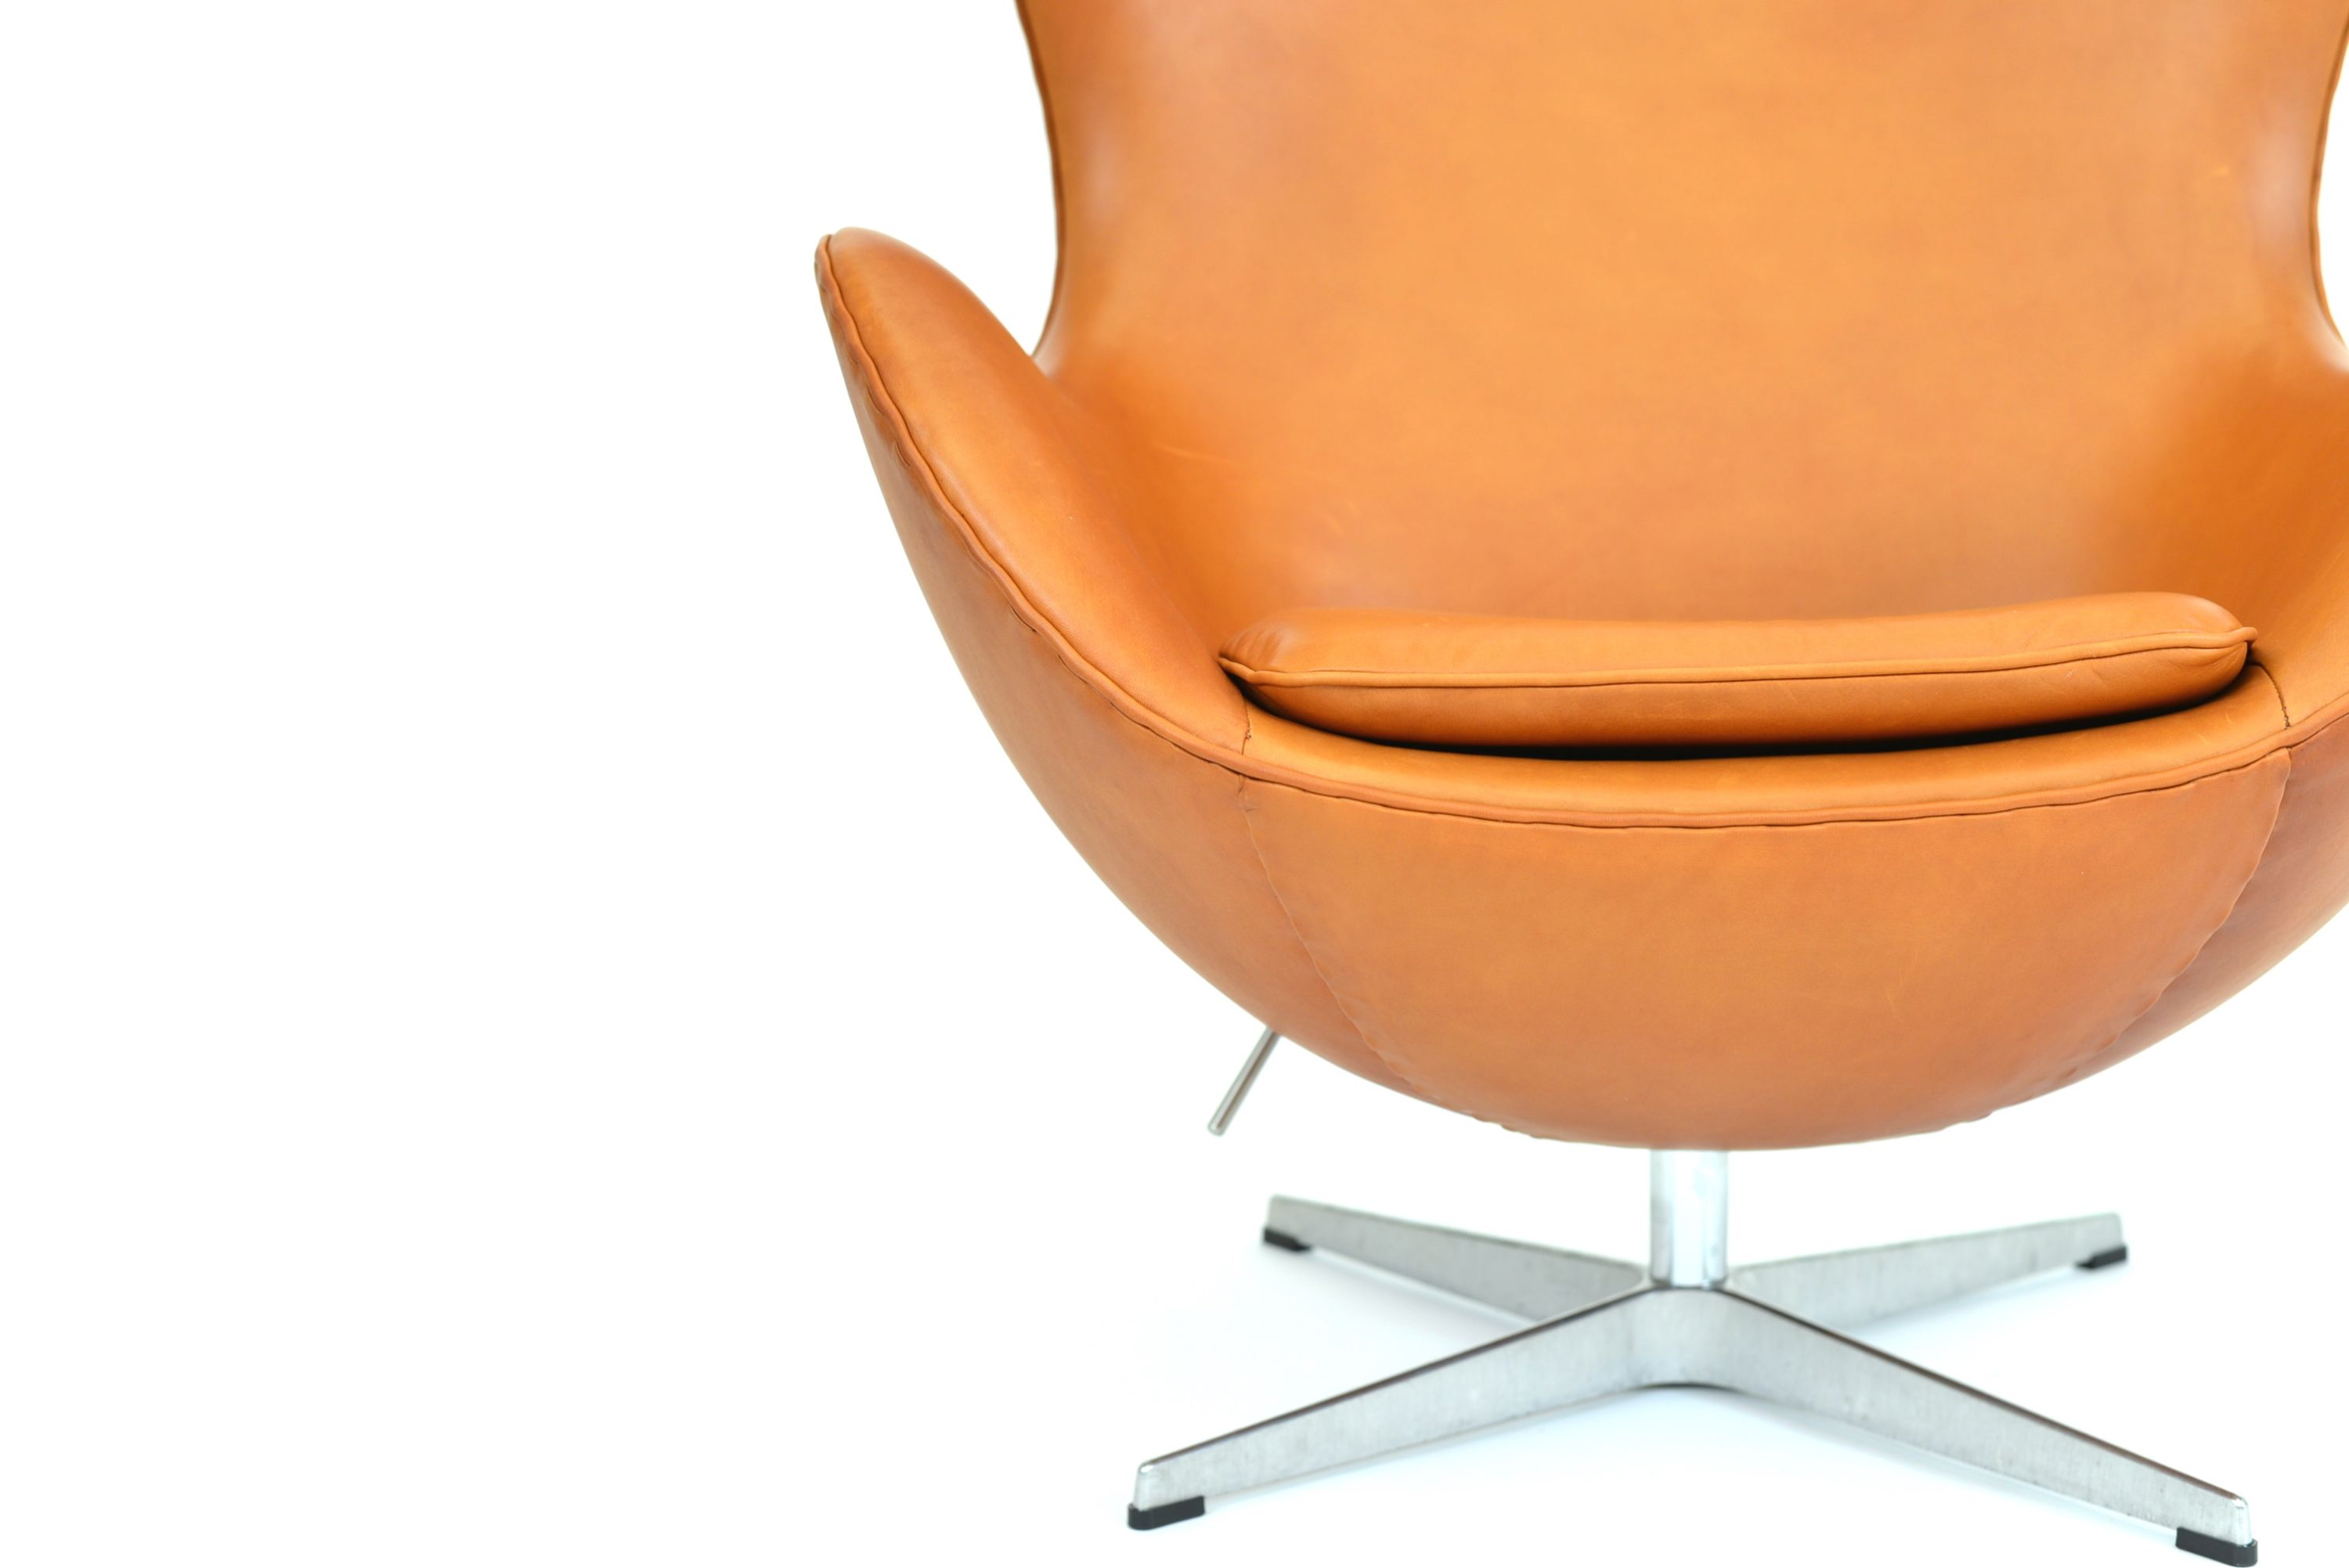 Sessel Eiform Egg Chair Leder Cheap Egg Chair Egg Chair Das Ei Fuhocker Stoff